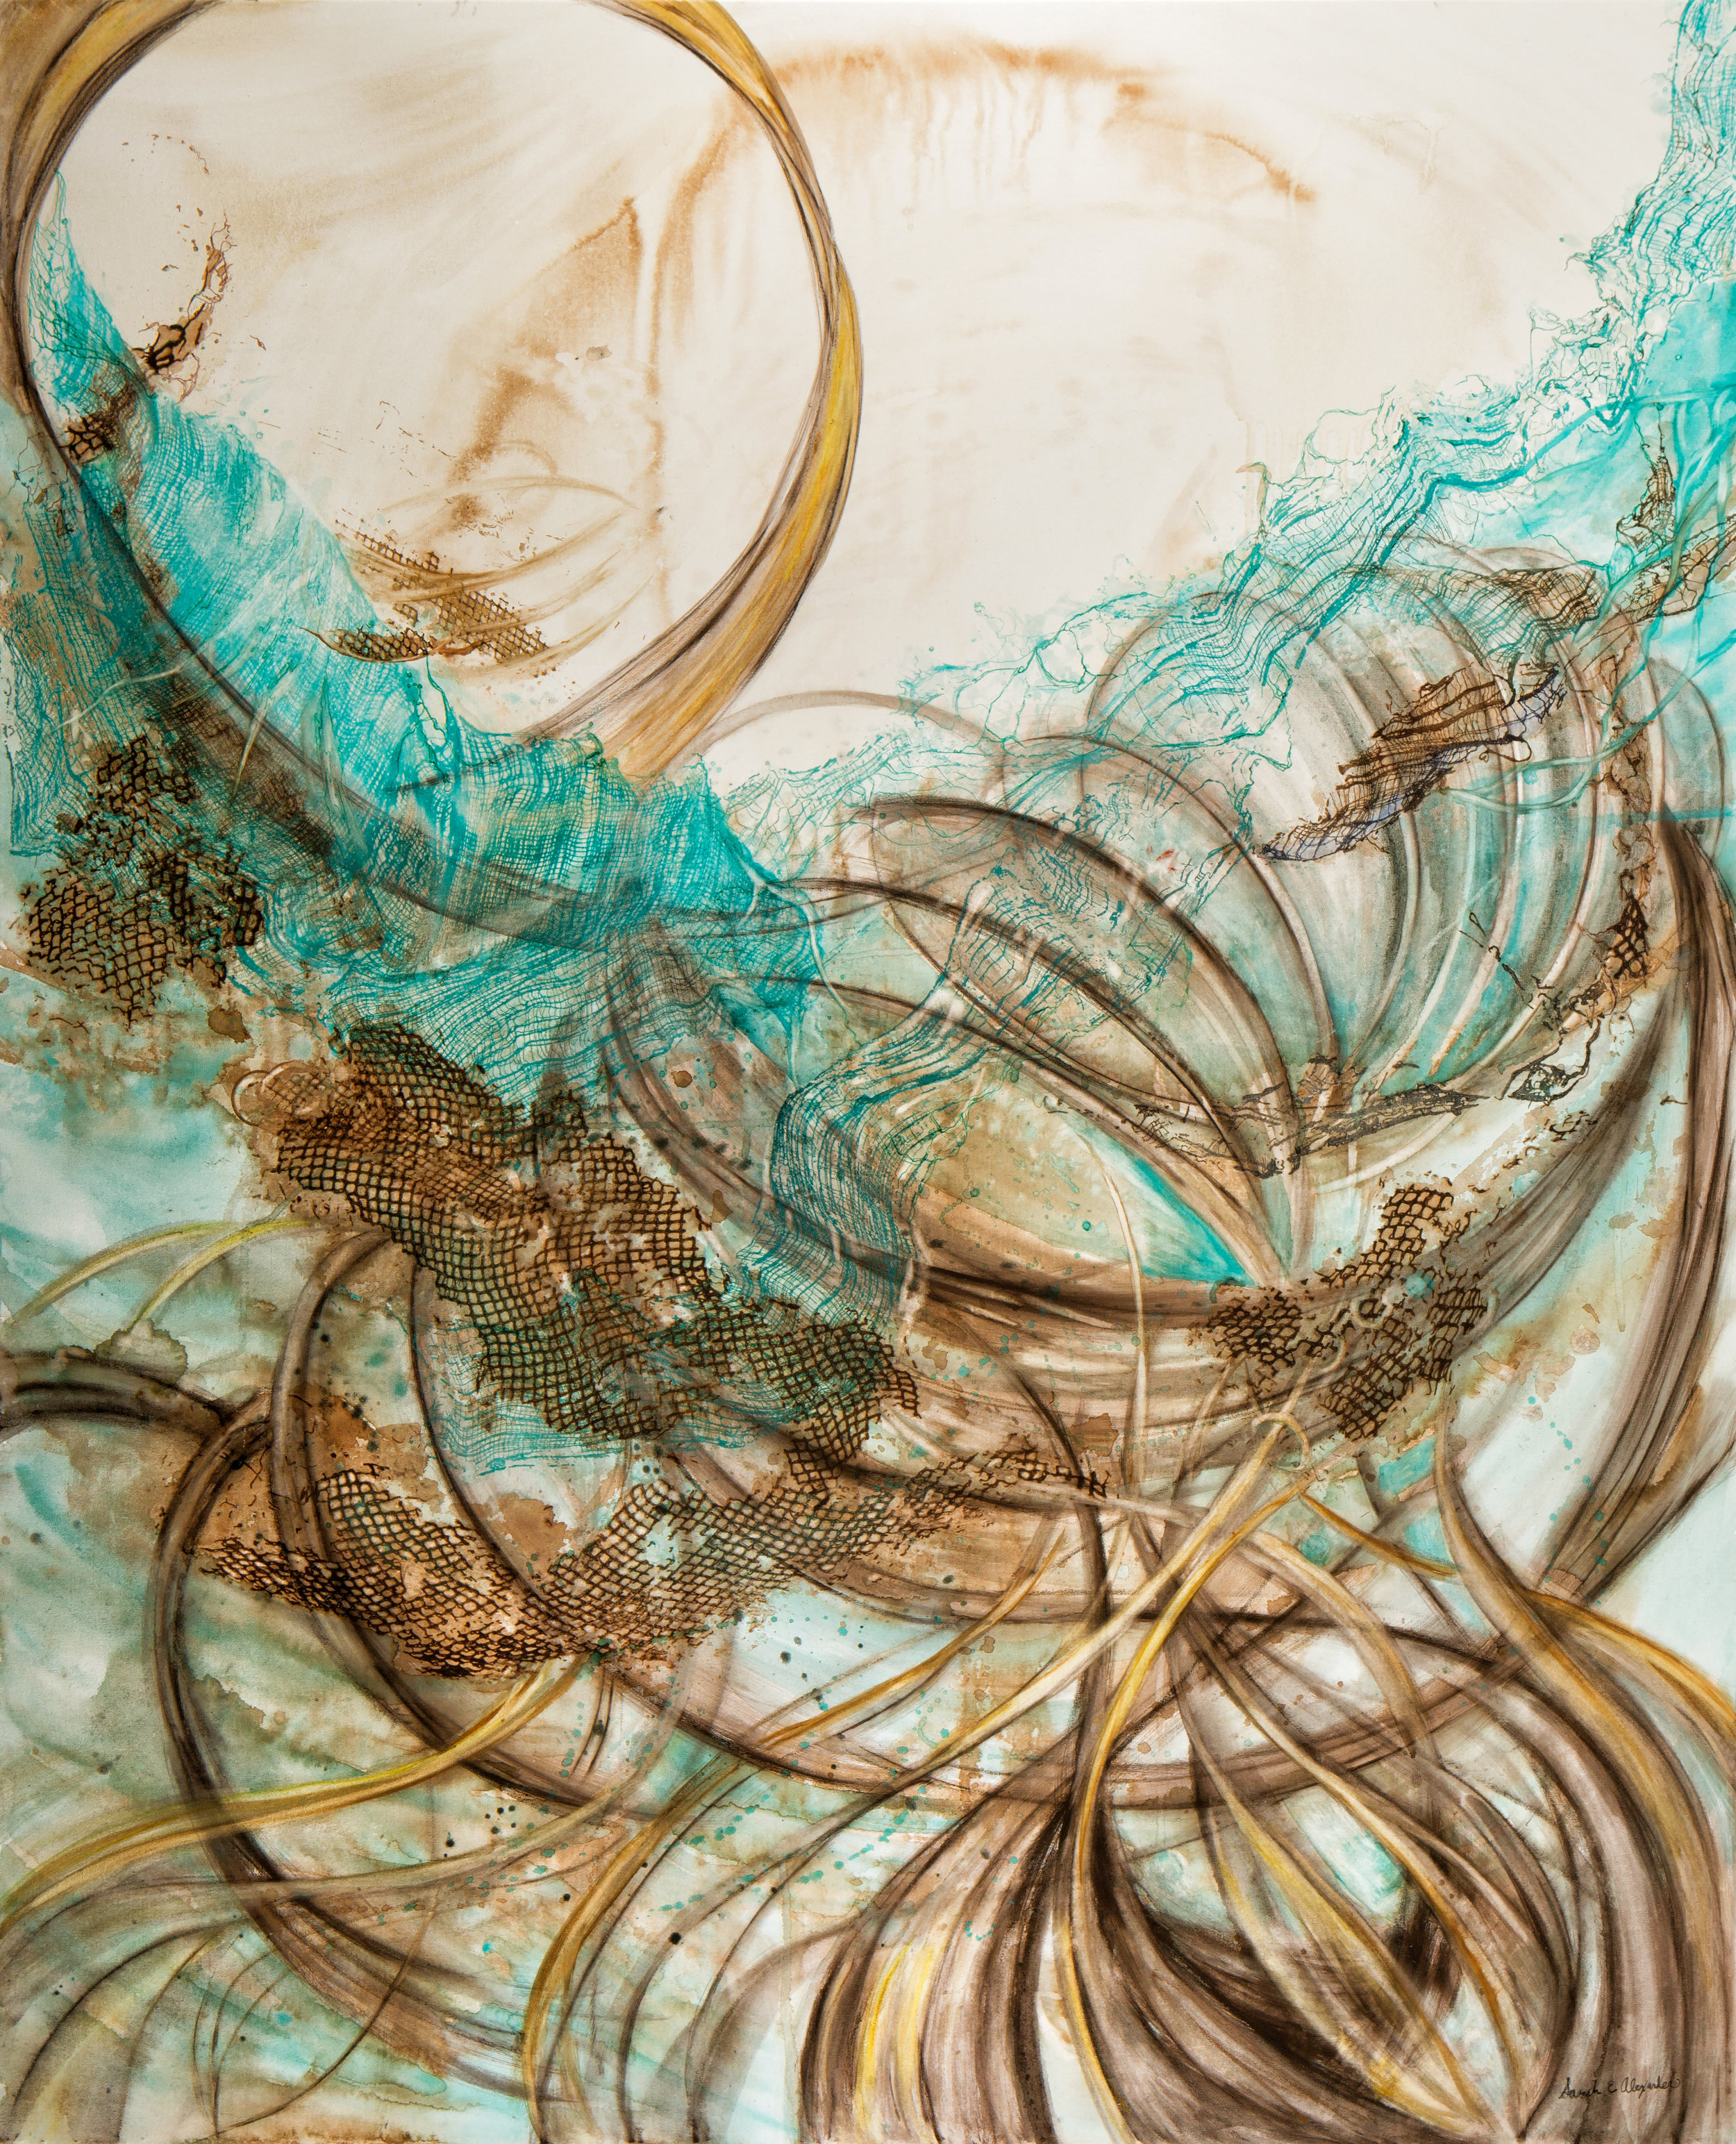 Sarah Alexander, In Flux , Watercolor, Charcoal and Ink on Canvas